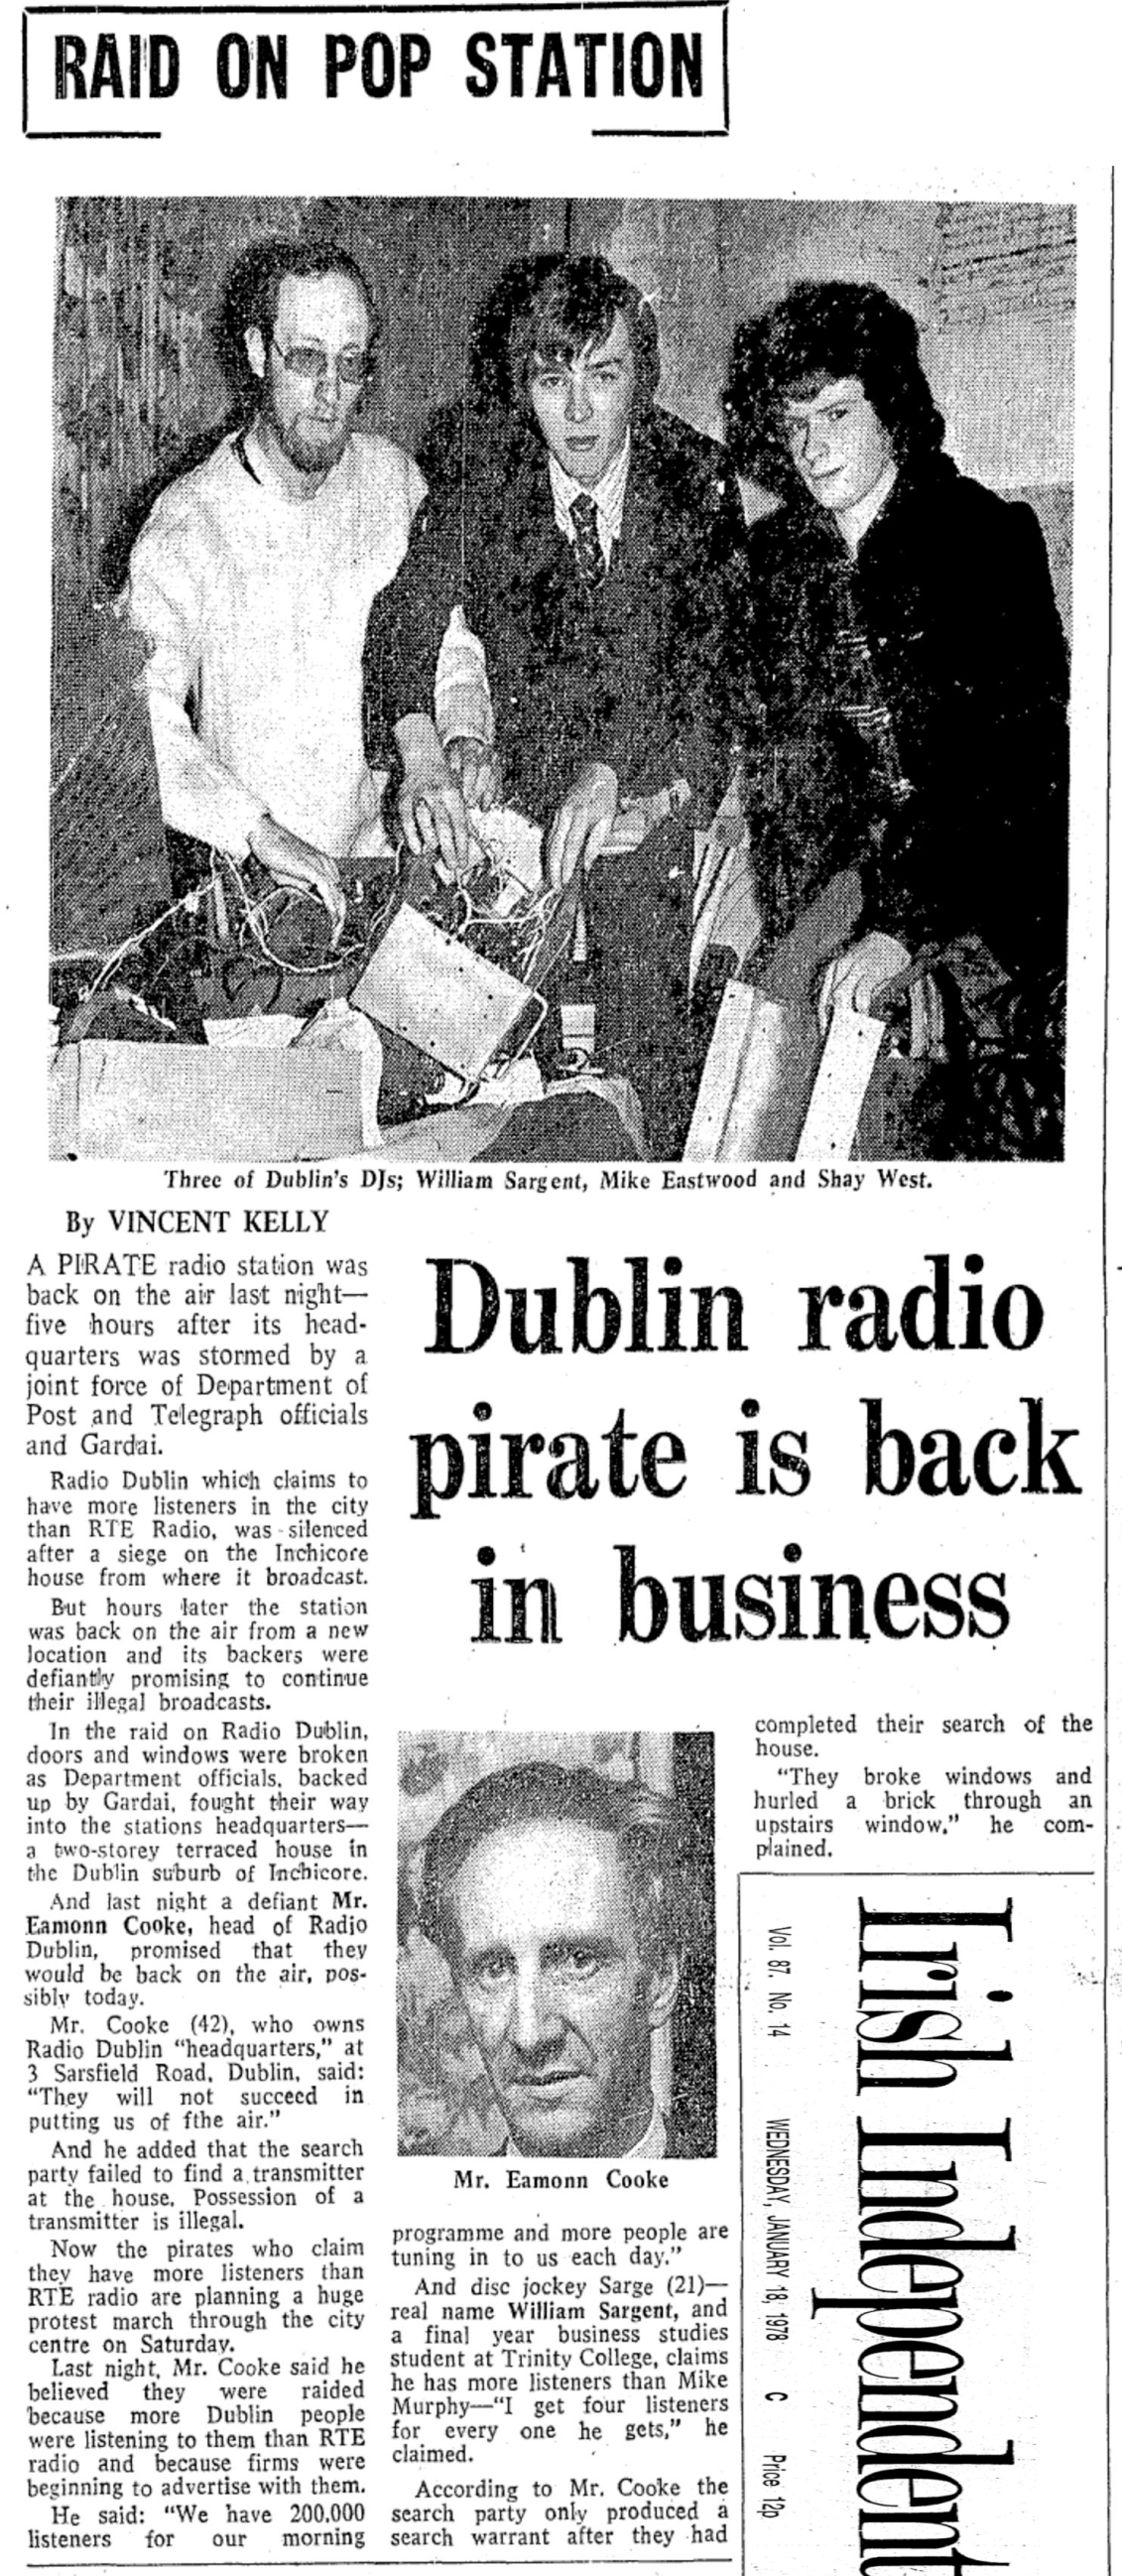 Raid on pop station was a newspaper headline from The Irish Independent dated January 18th 1978